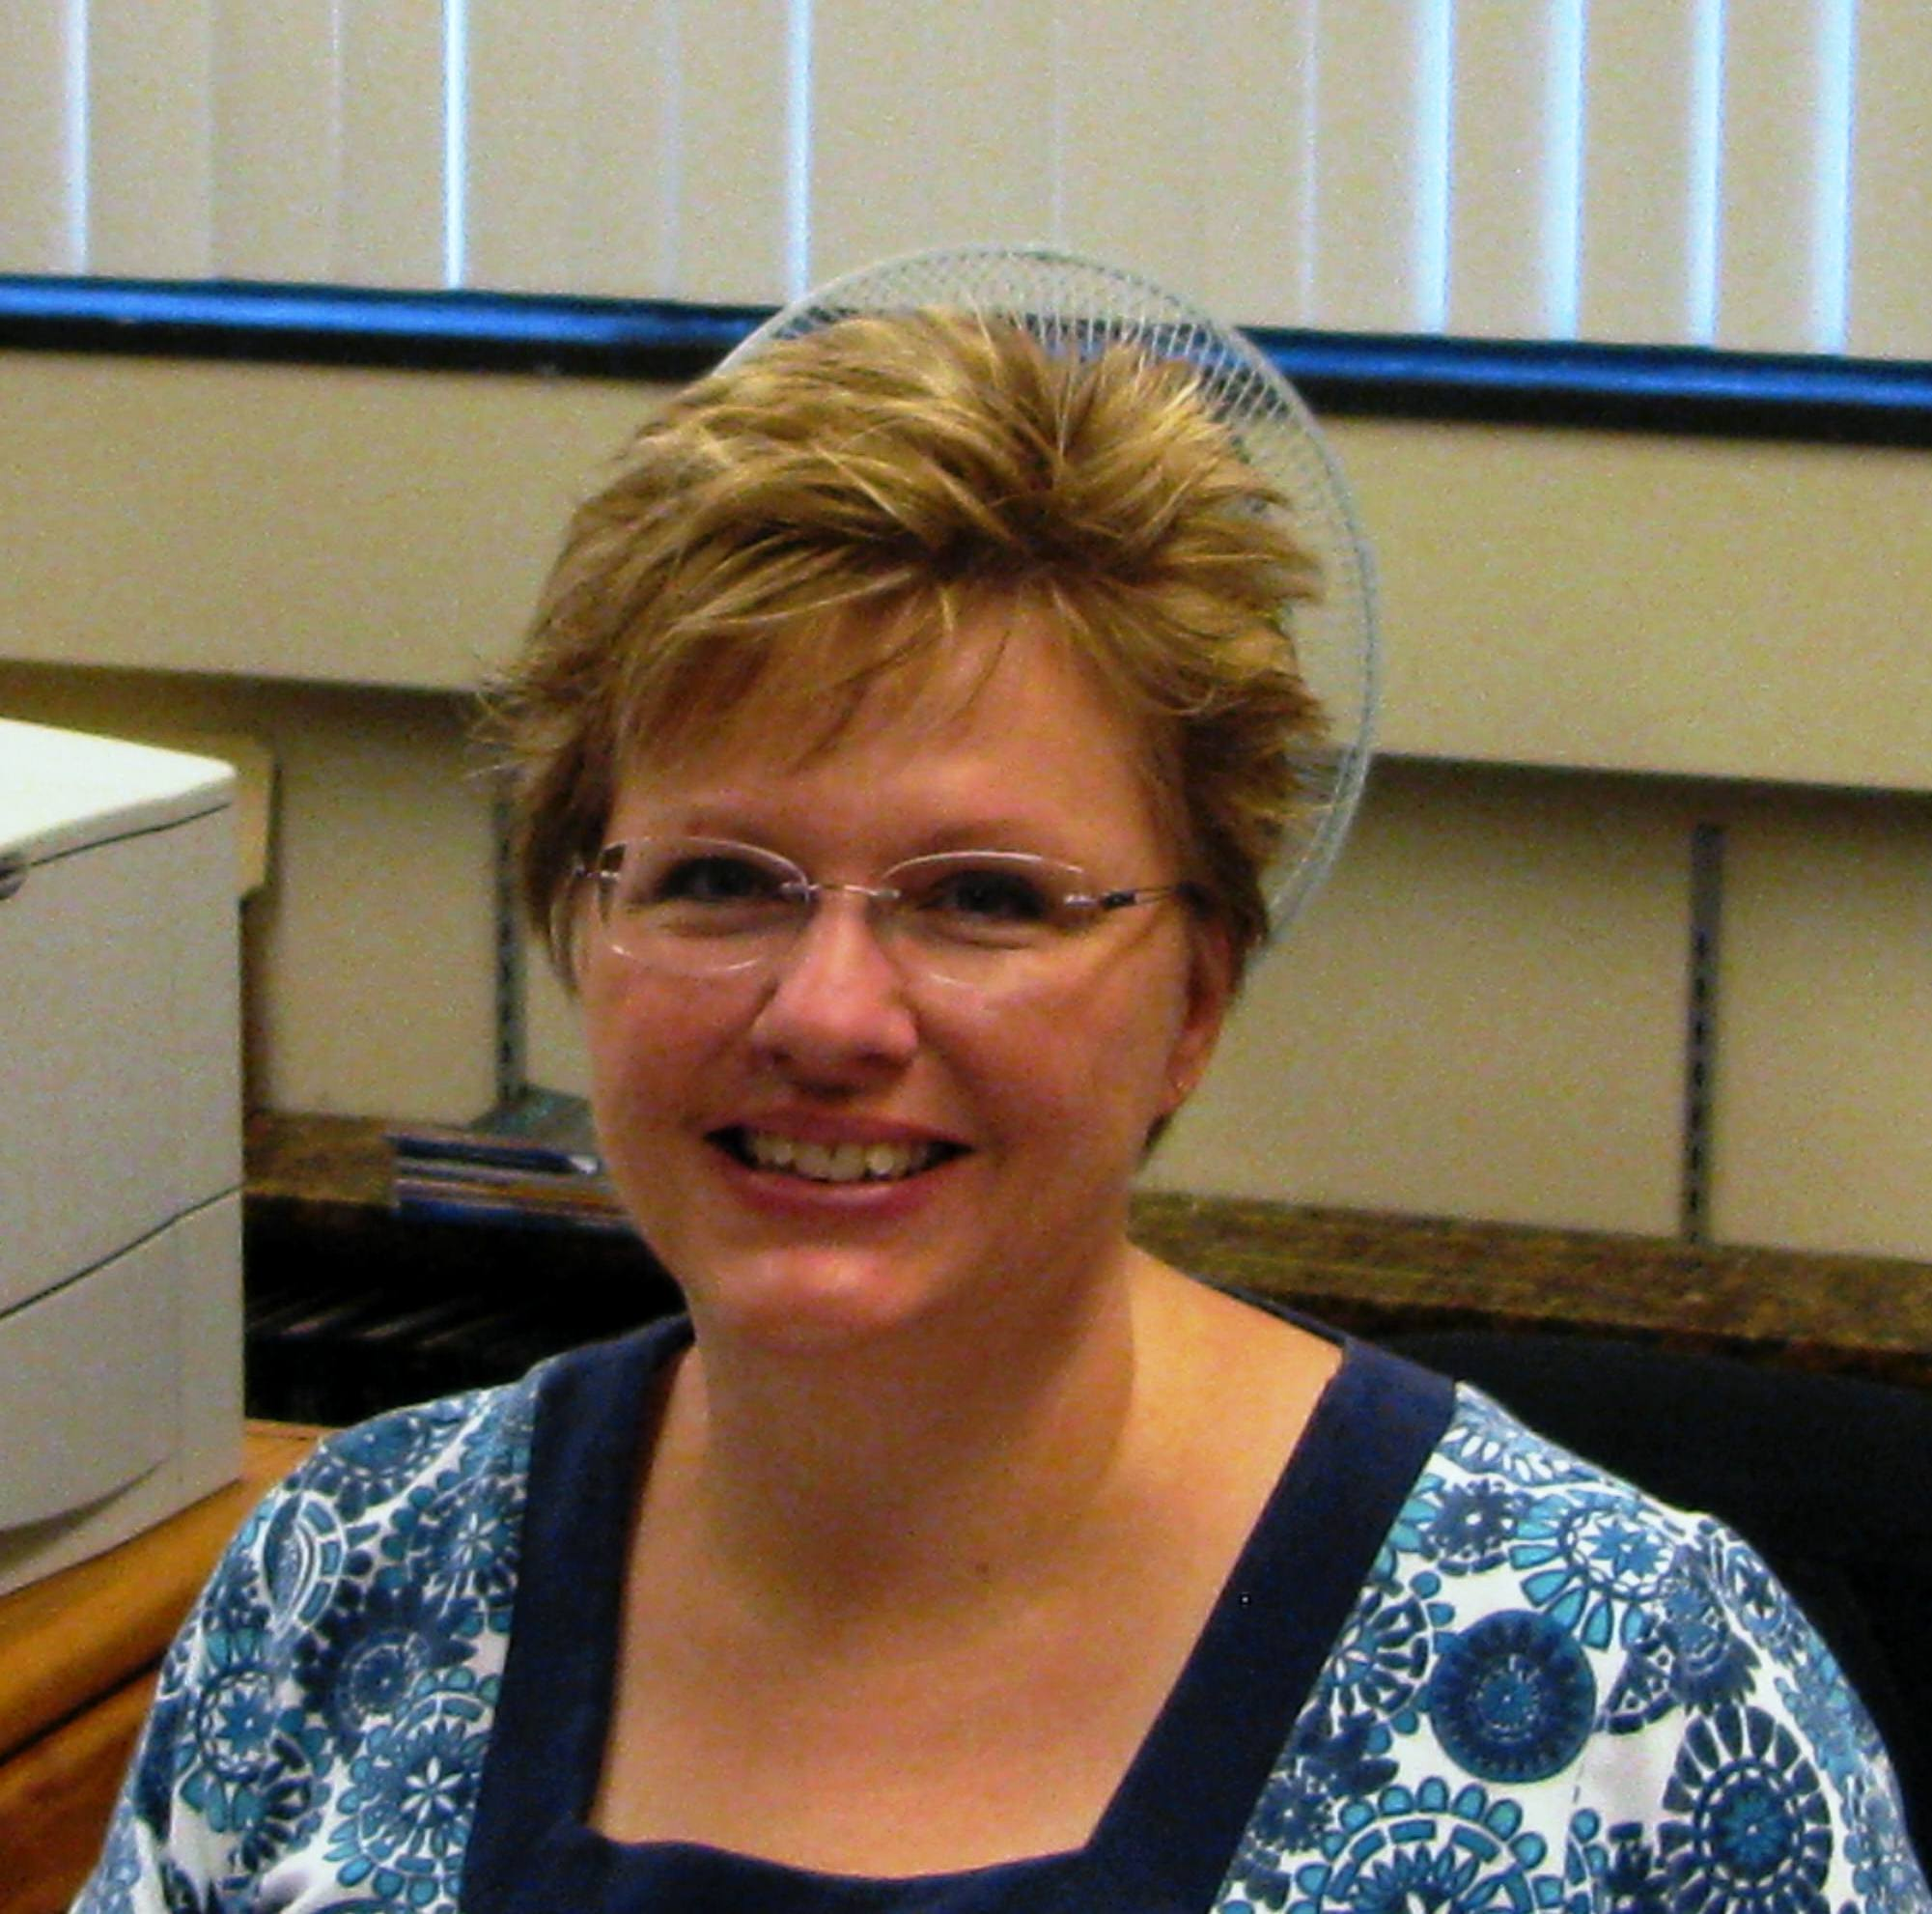 Group 4 Rep, Gail Ault